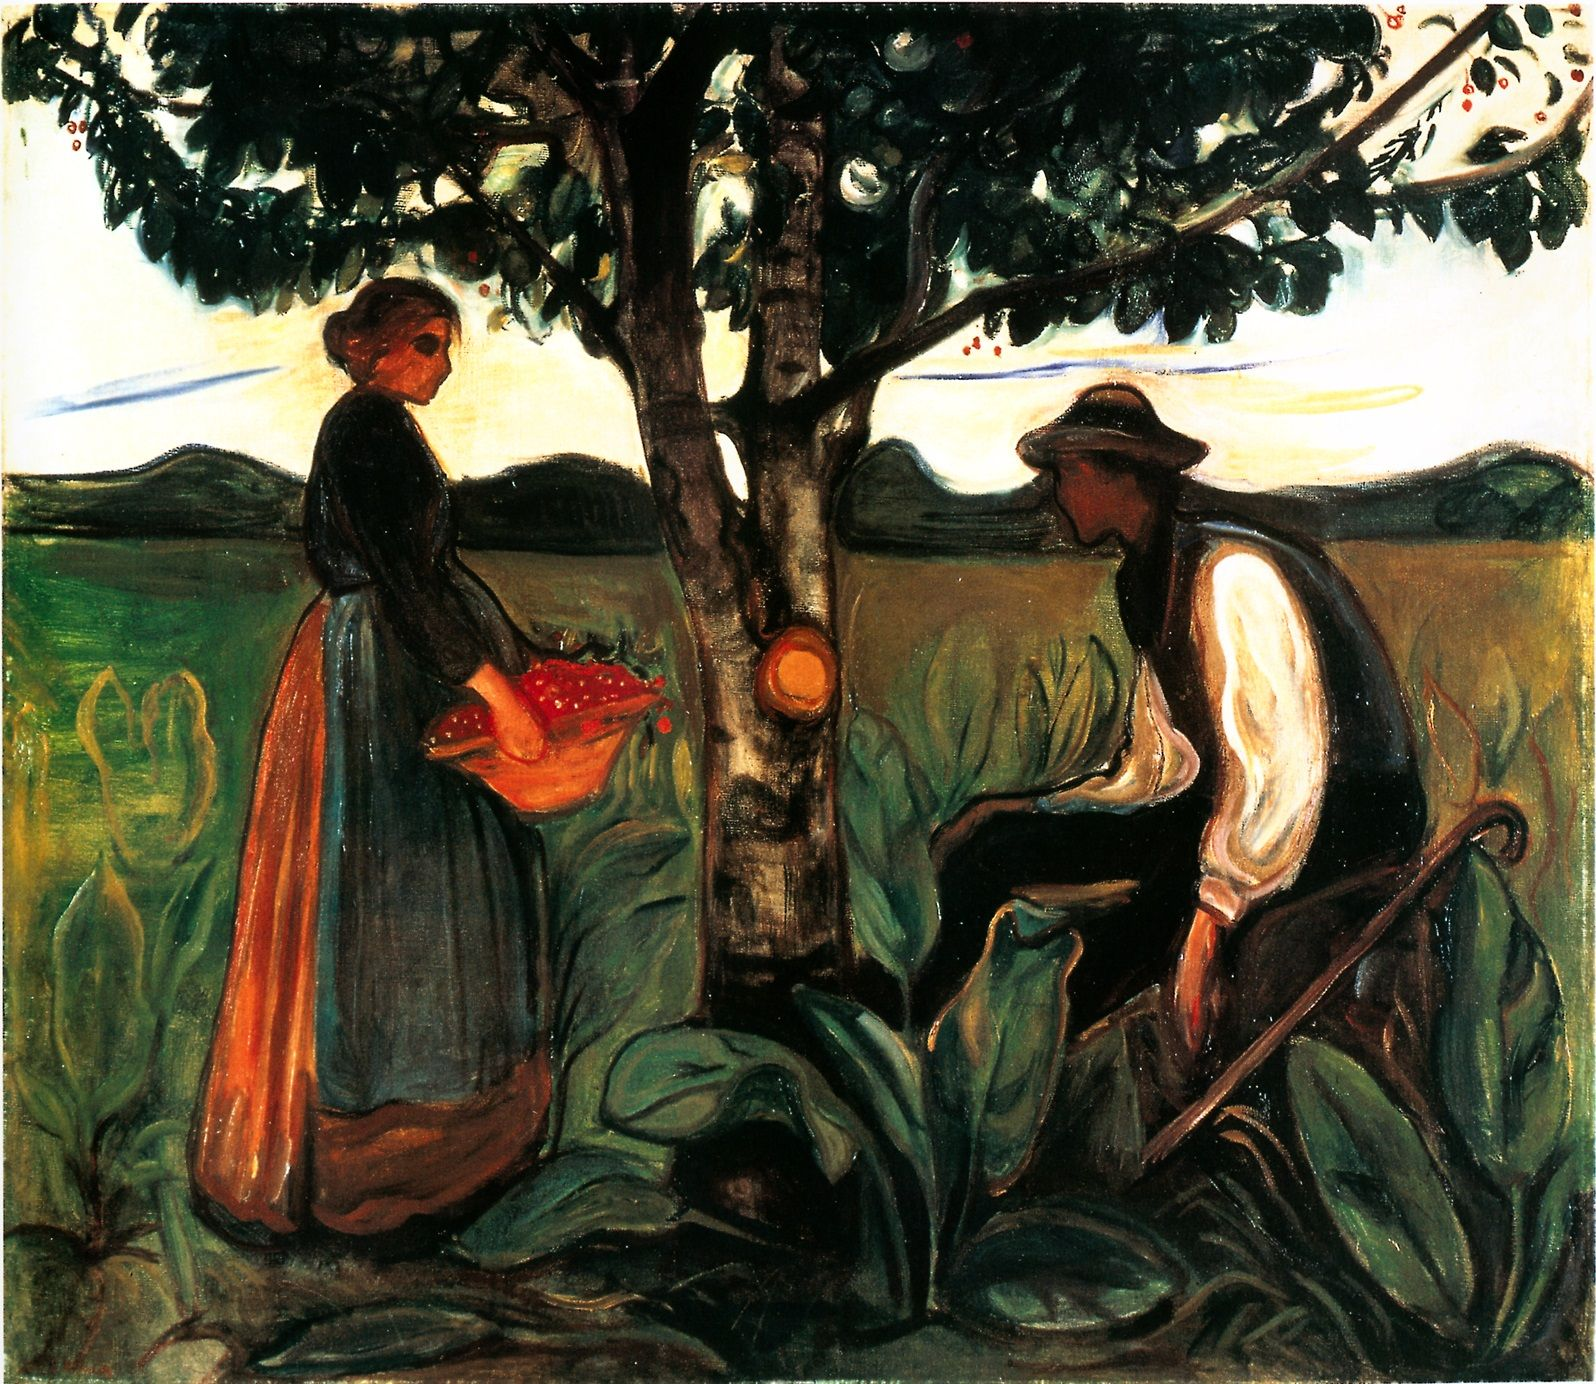 EDVARD MUNCH Fertility